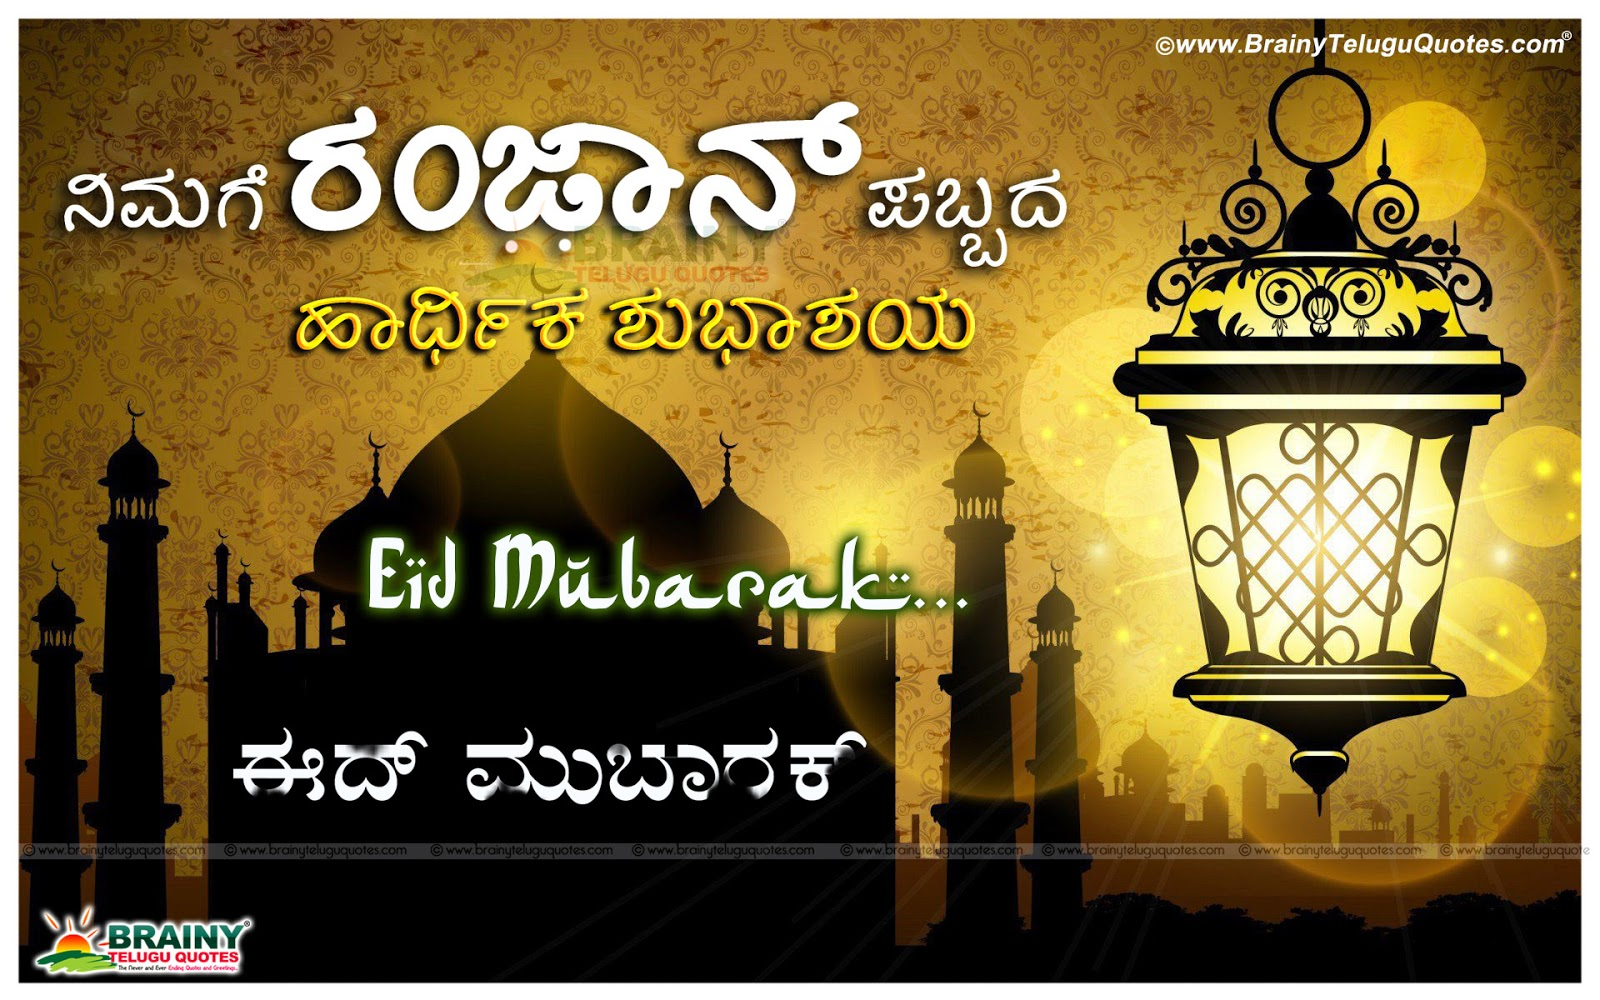 Kannada best wishes for ramzan festival brainyteluguquotes kannada did mubarak sms and nice quotes greetings images top kannada language nice inspiring ramzan wallpapers with nice quotes images latest kannada kristyandbryce Images